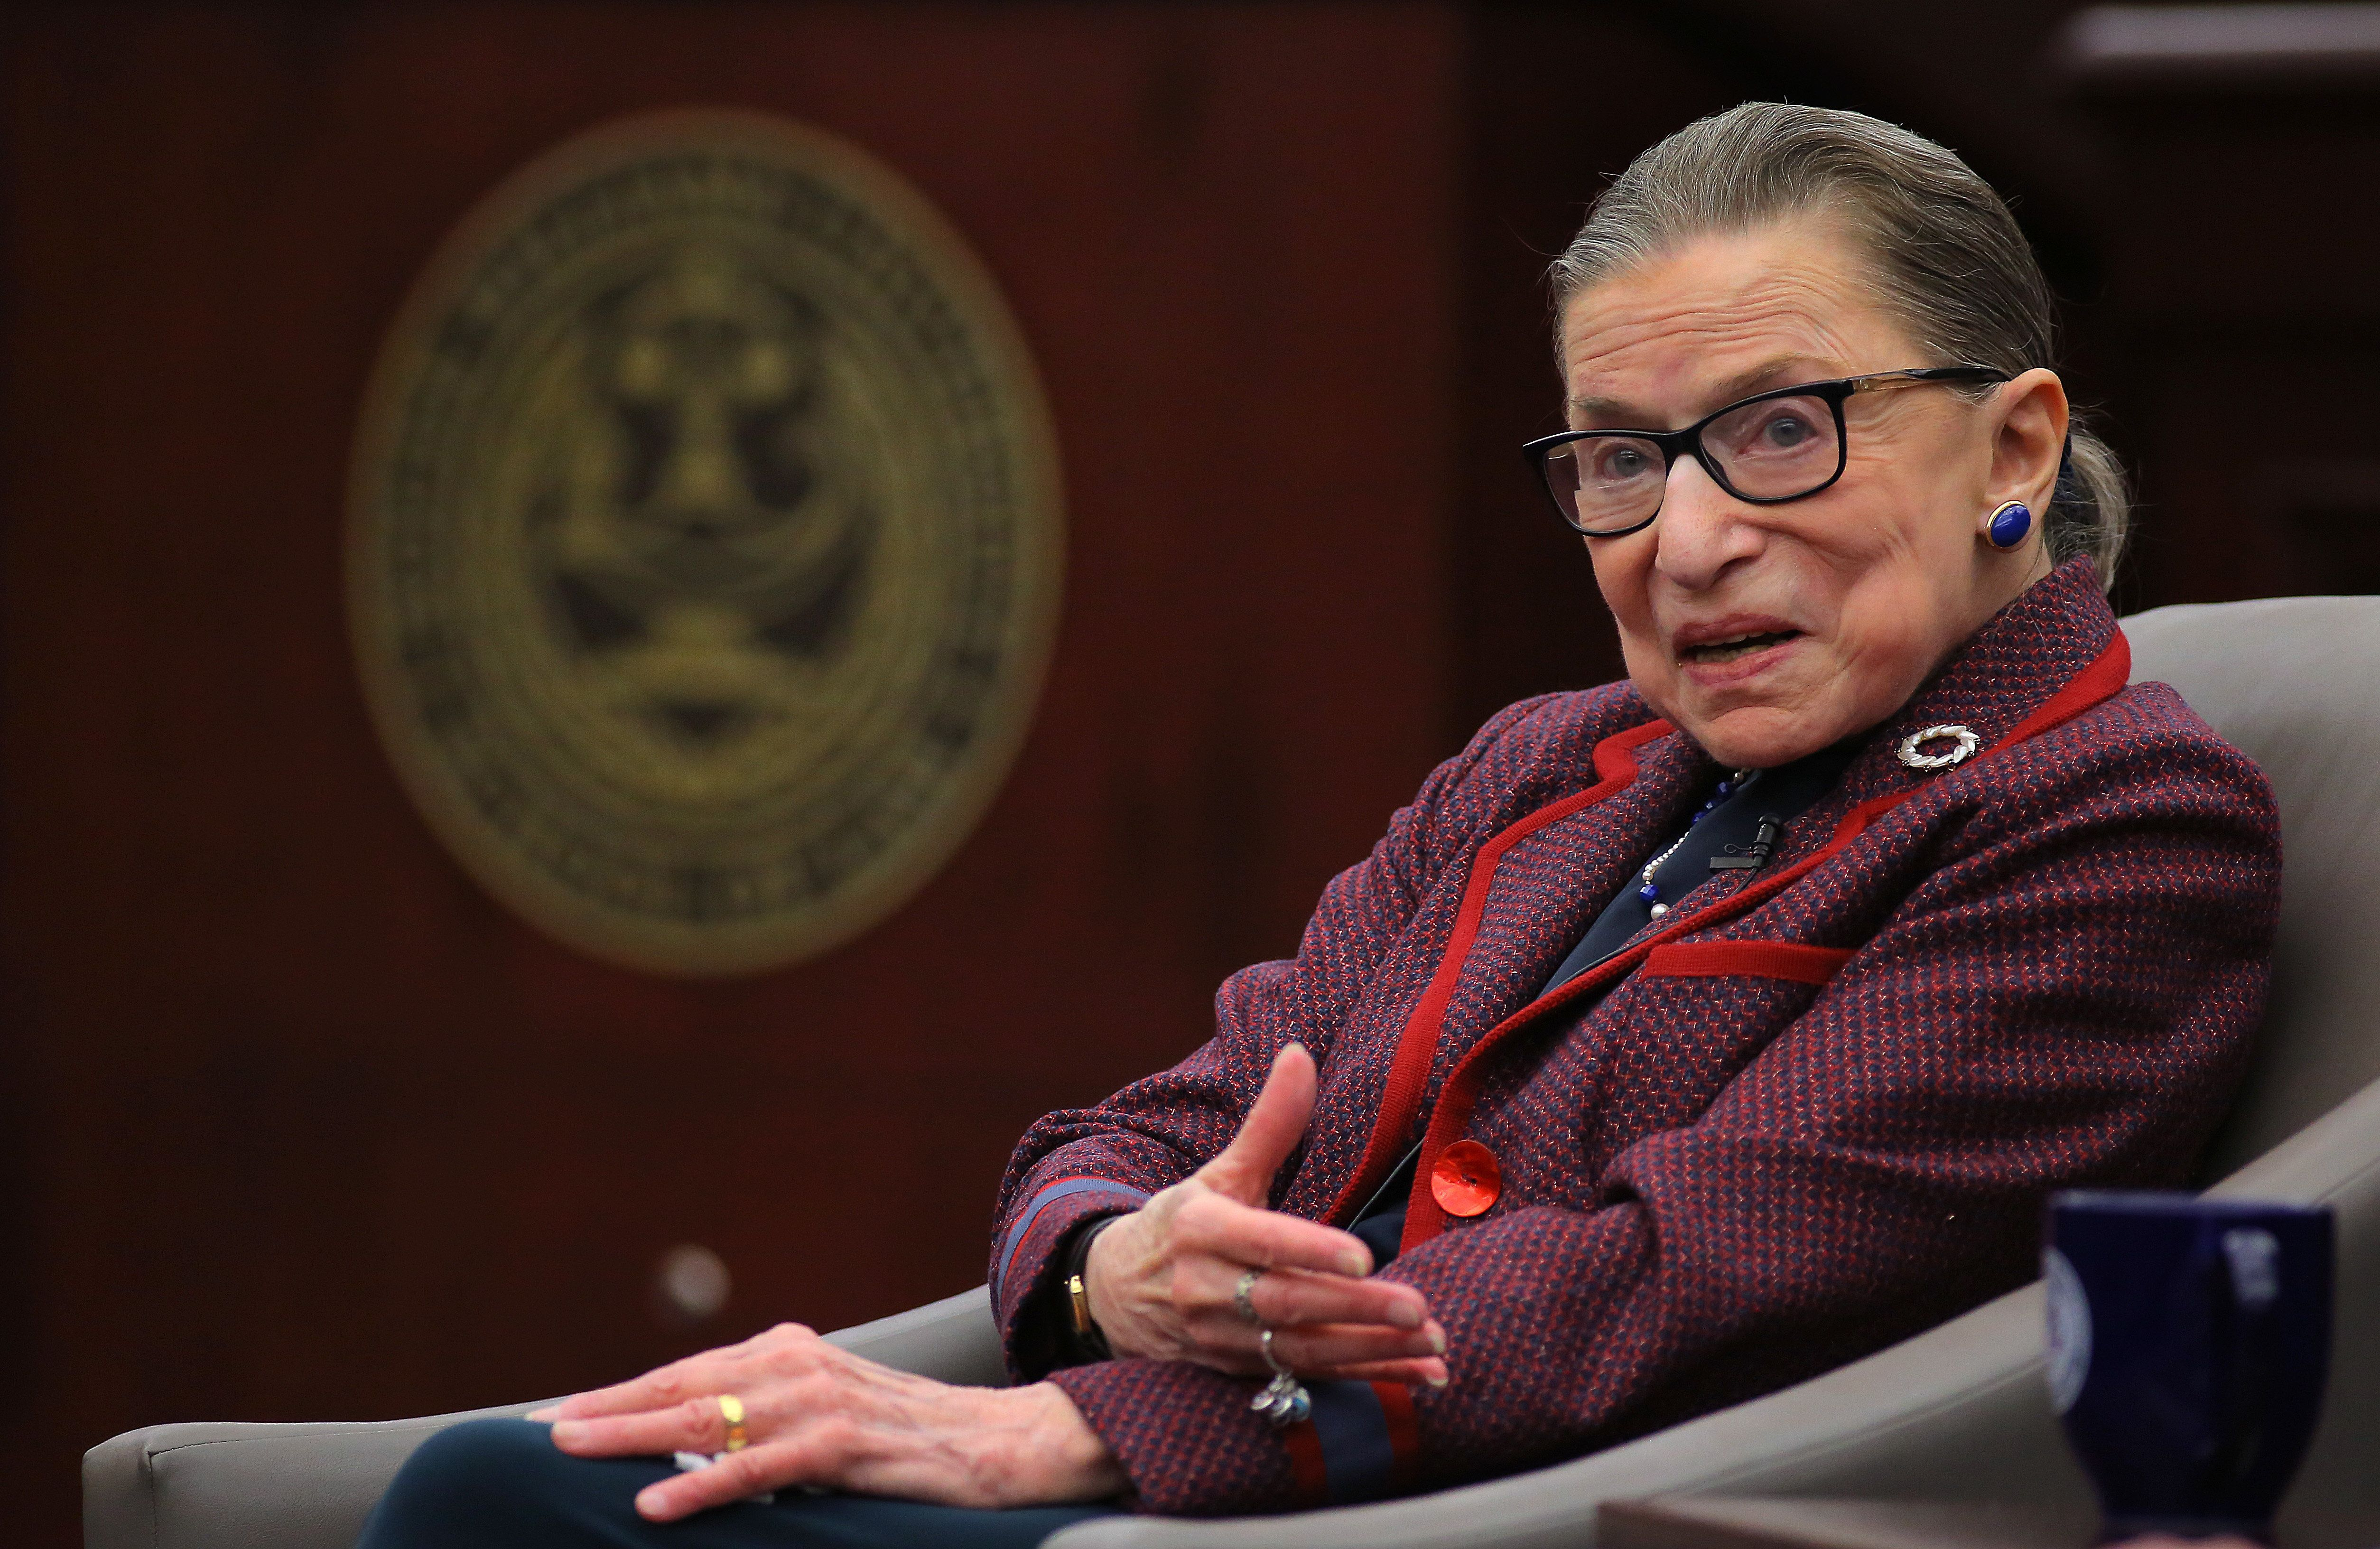 BRISTOL, RI - JANUARY 30: United States Supreme Court Justice Ruth Bader Ginsburg answers audience questions during an event at Roger Williams University Law School in Bristol, RI on Jan. 30, 2018. (Photo by Pat Greenhouse/The Boston Globe via Getty Images)